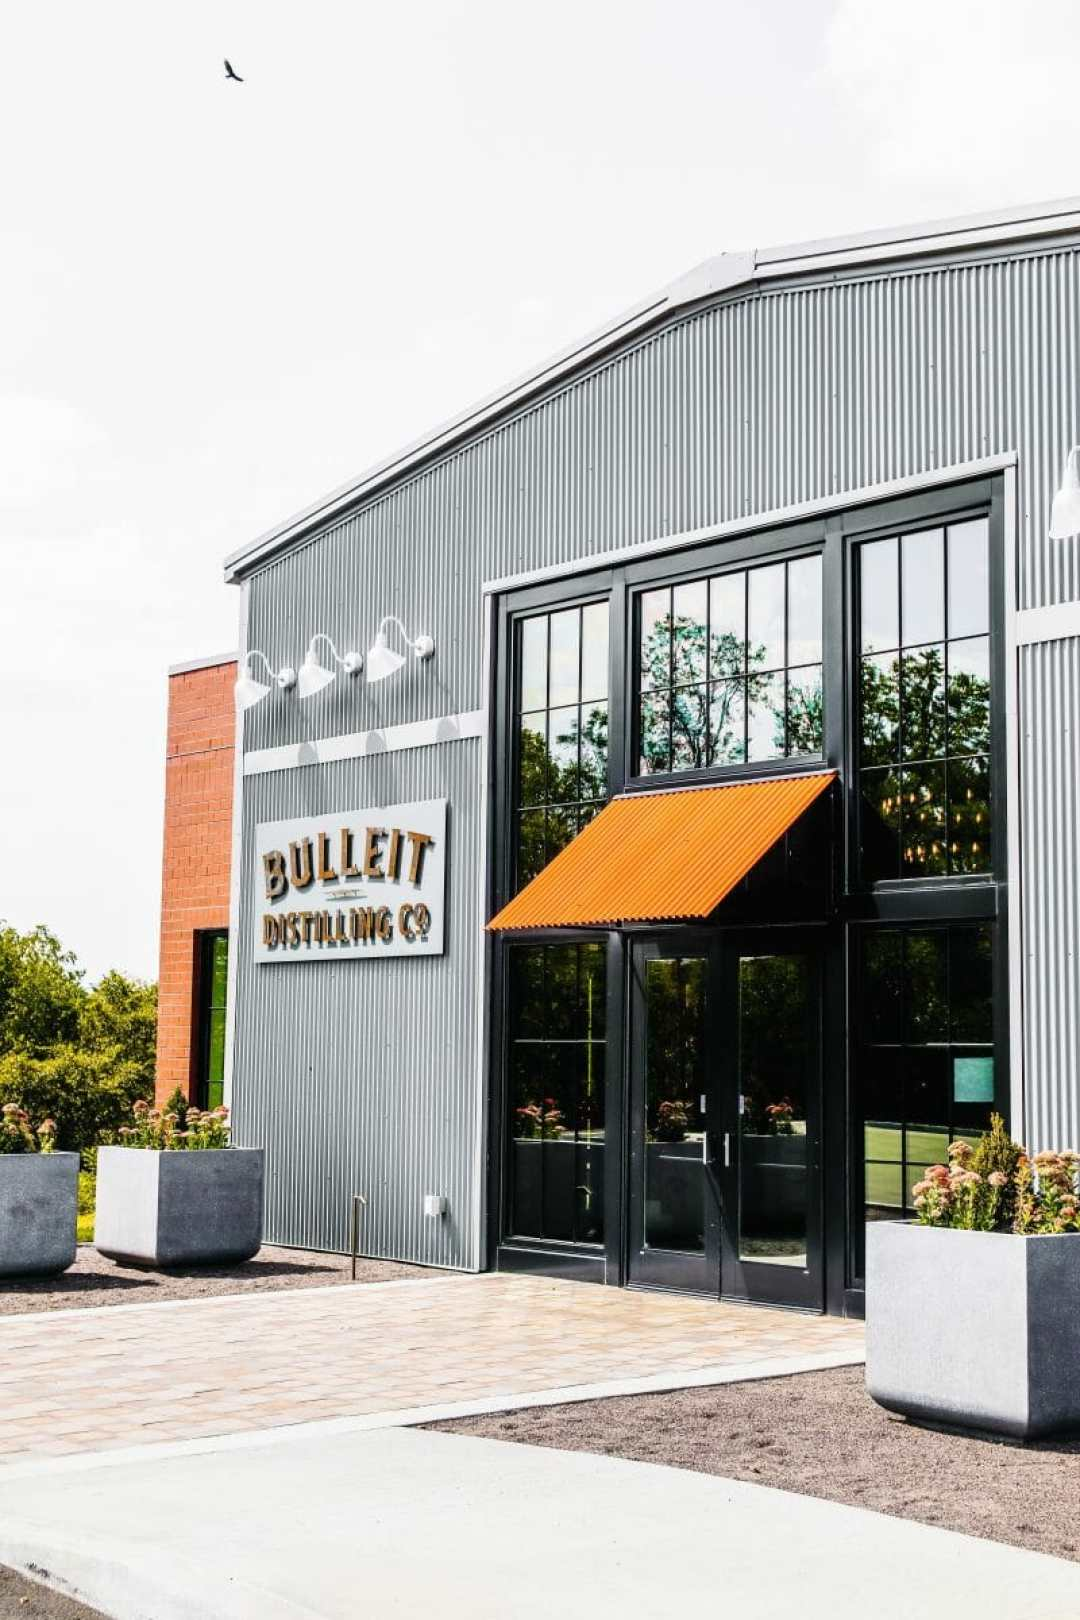 The New Bulleit Bourbon Whiskey Experience in Shelby County, KY by JC Phelps of JCP Eats, a Kentucky Food, Lifestyle, and Travel Blog